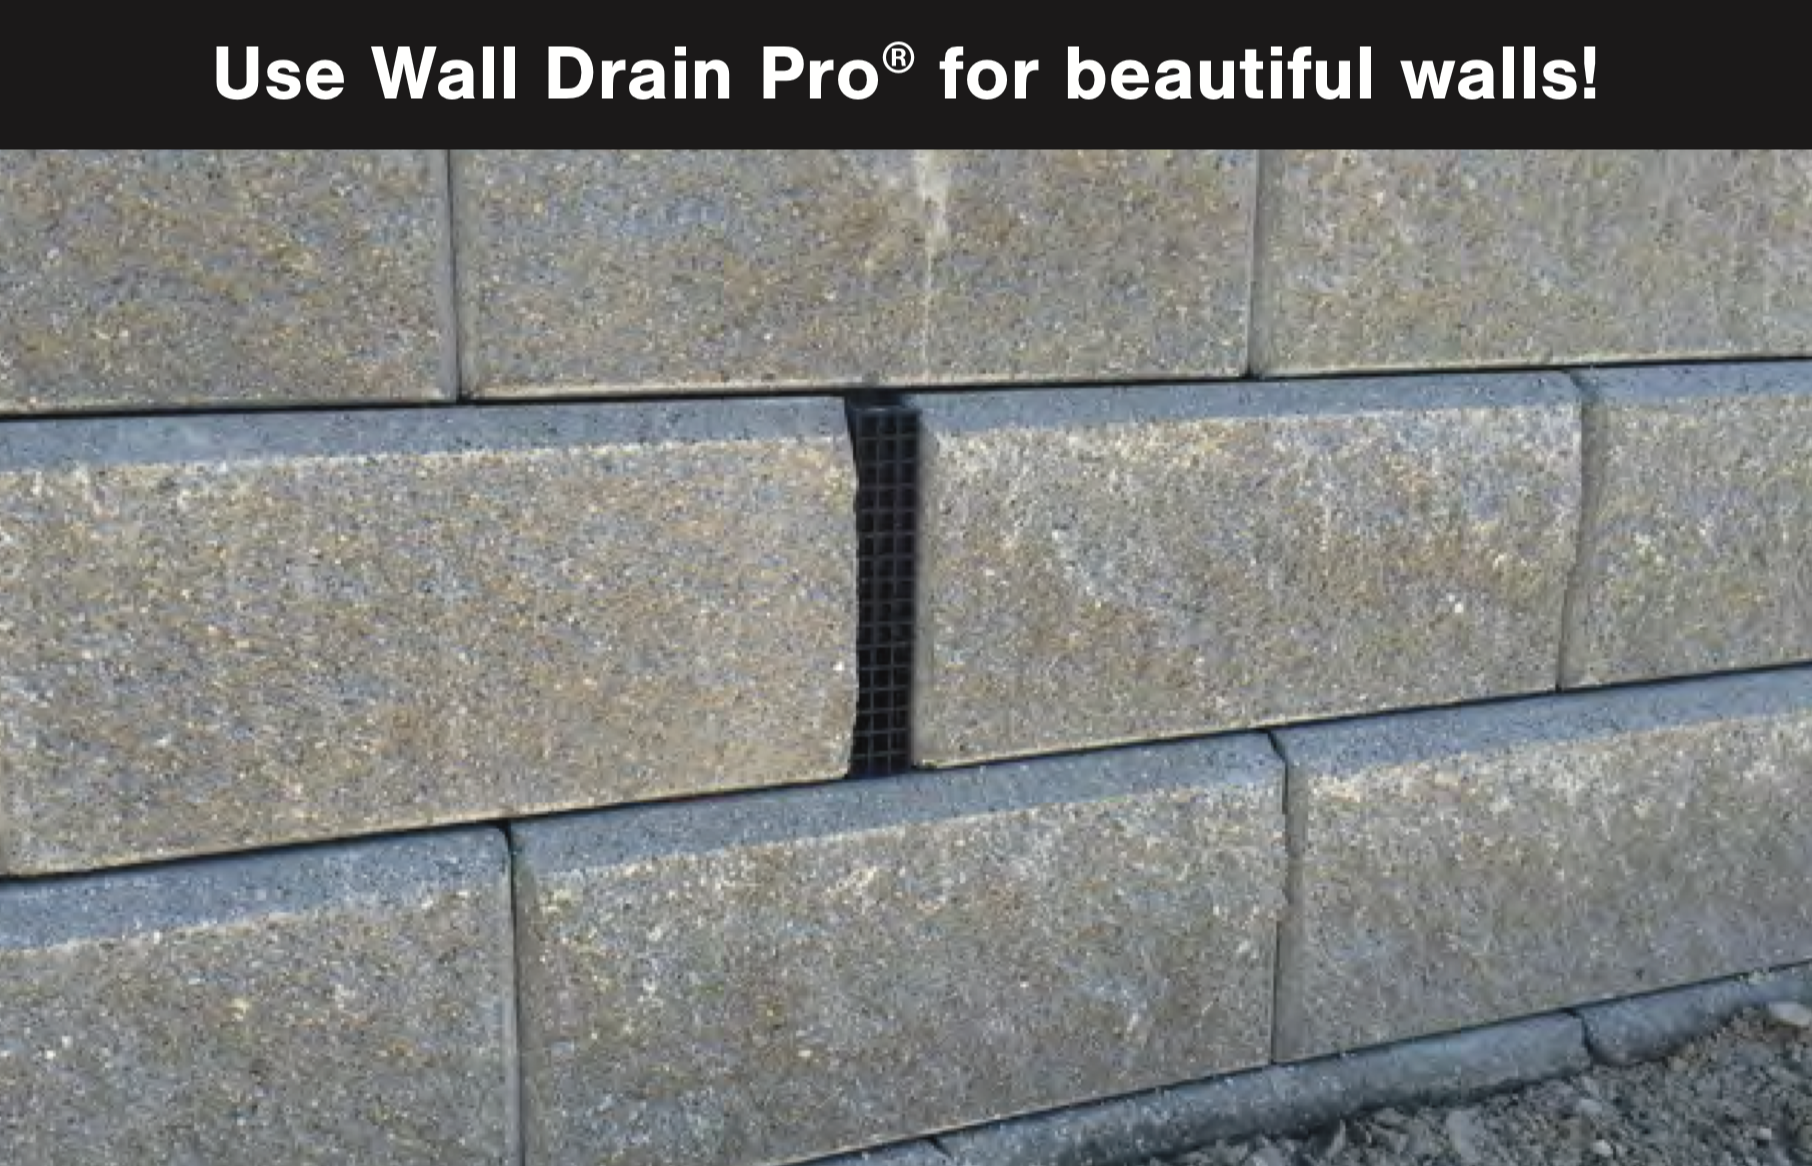 Wall Drain Pro - In Use